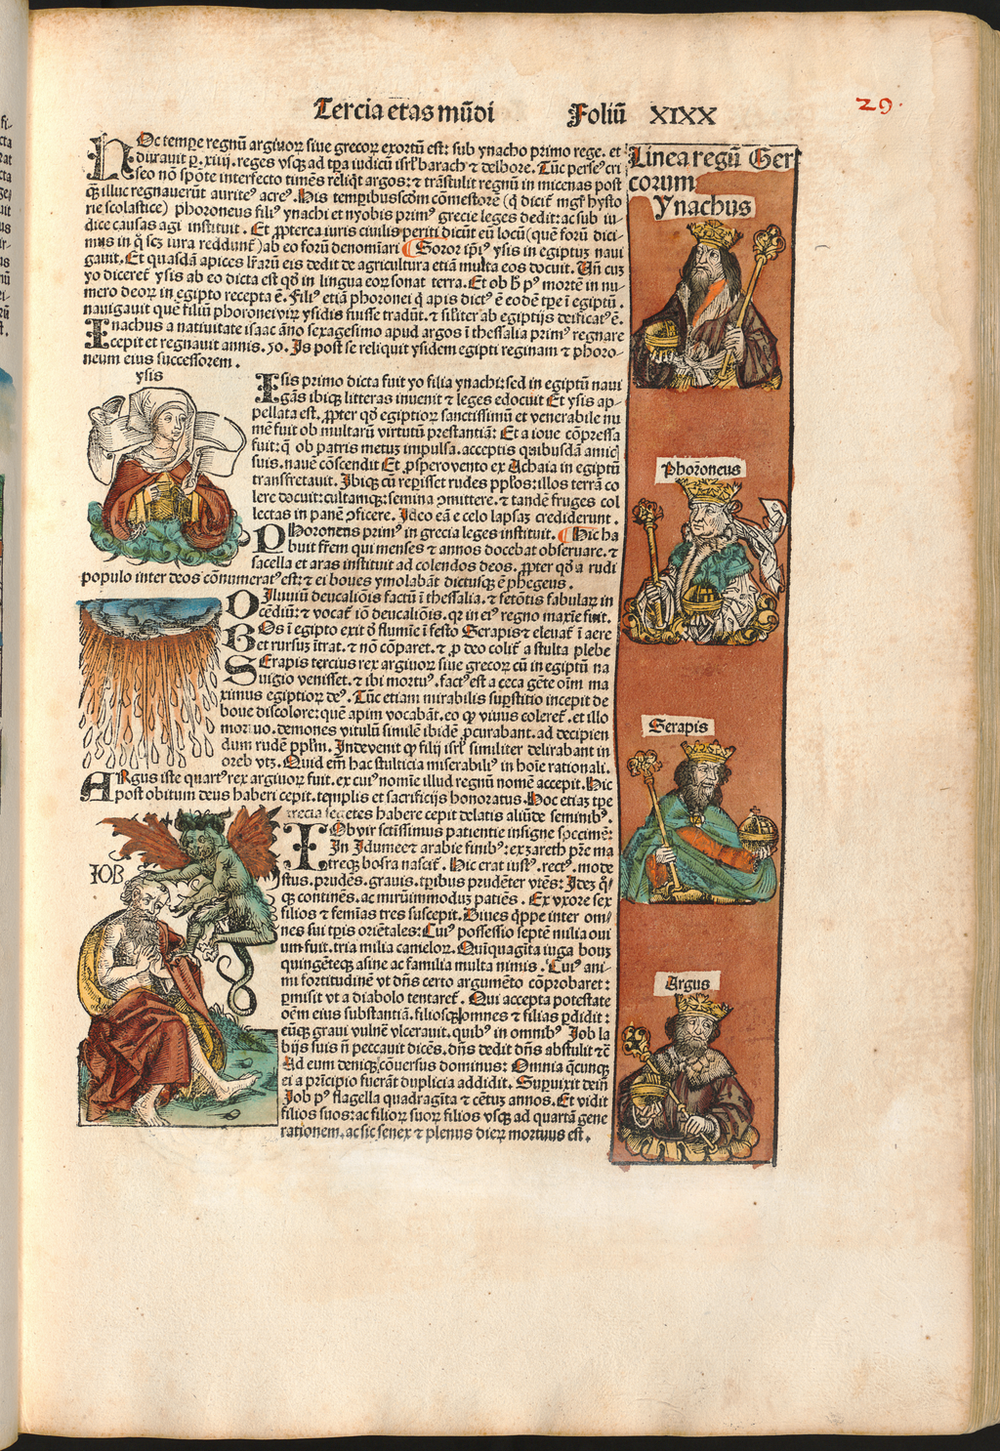 Figure 4: Page with Job and Kings from the Nuremberg Chronicle, hand-colored woodcut, 1493, folio 29 recto